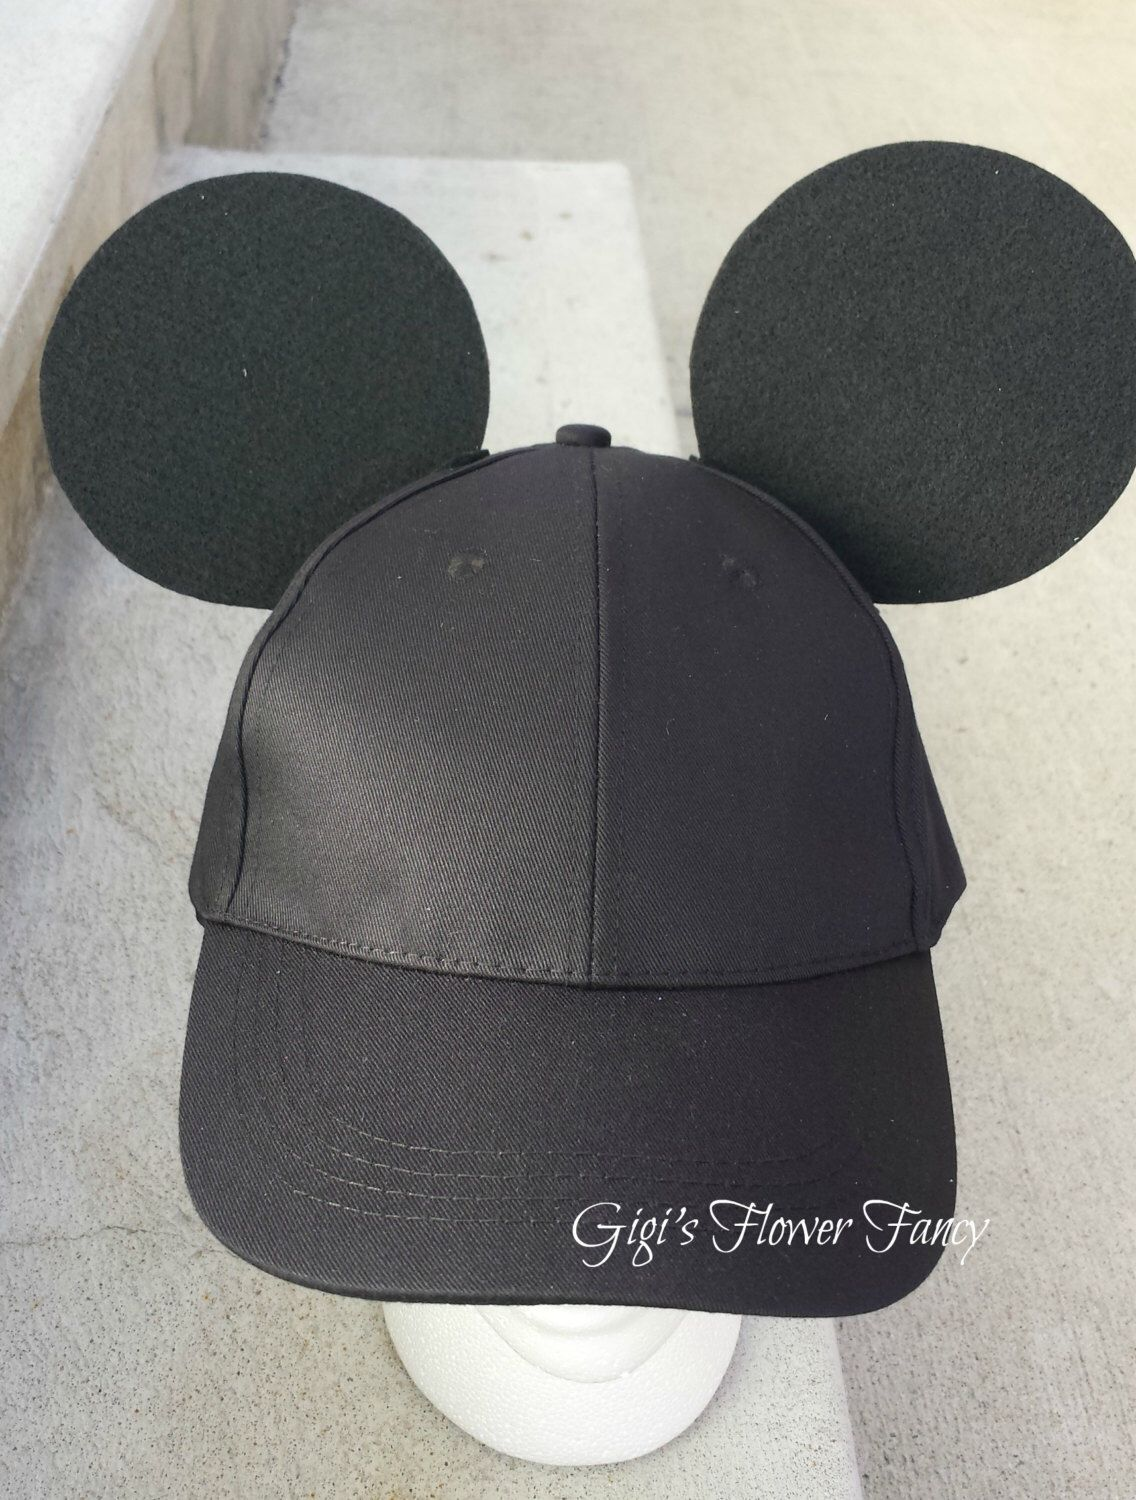 """Mickey Mouse Ears - Black Baseball Cap for guys/boys - Add name optional   Original """"Ear Perfection"""" Stay Up Ears! by GigisFlowerFancy on Etsy https://www.etsy.com/listing/247015794/mickey-mouse-ears-black-baseball-cap-for"""